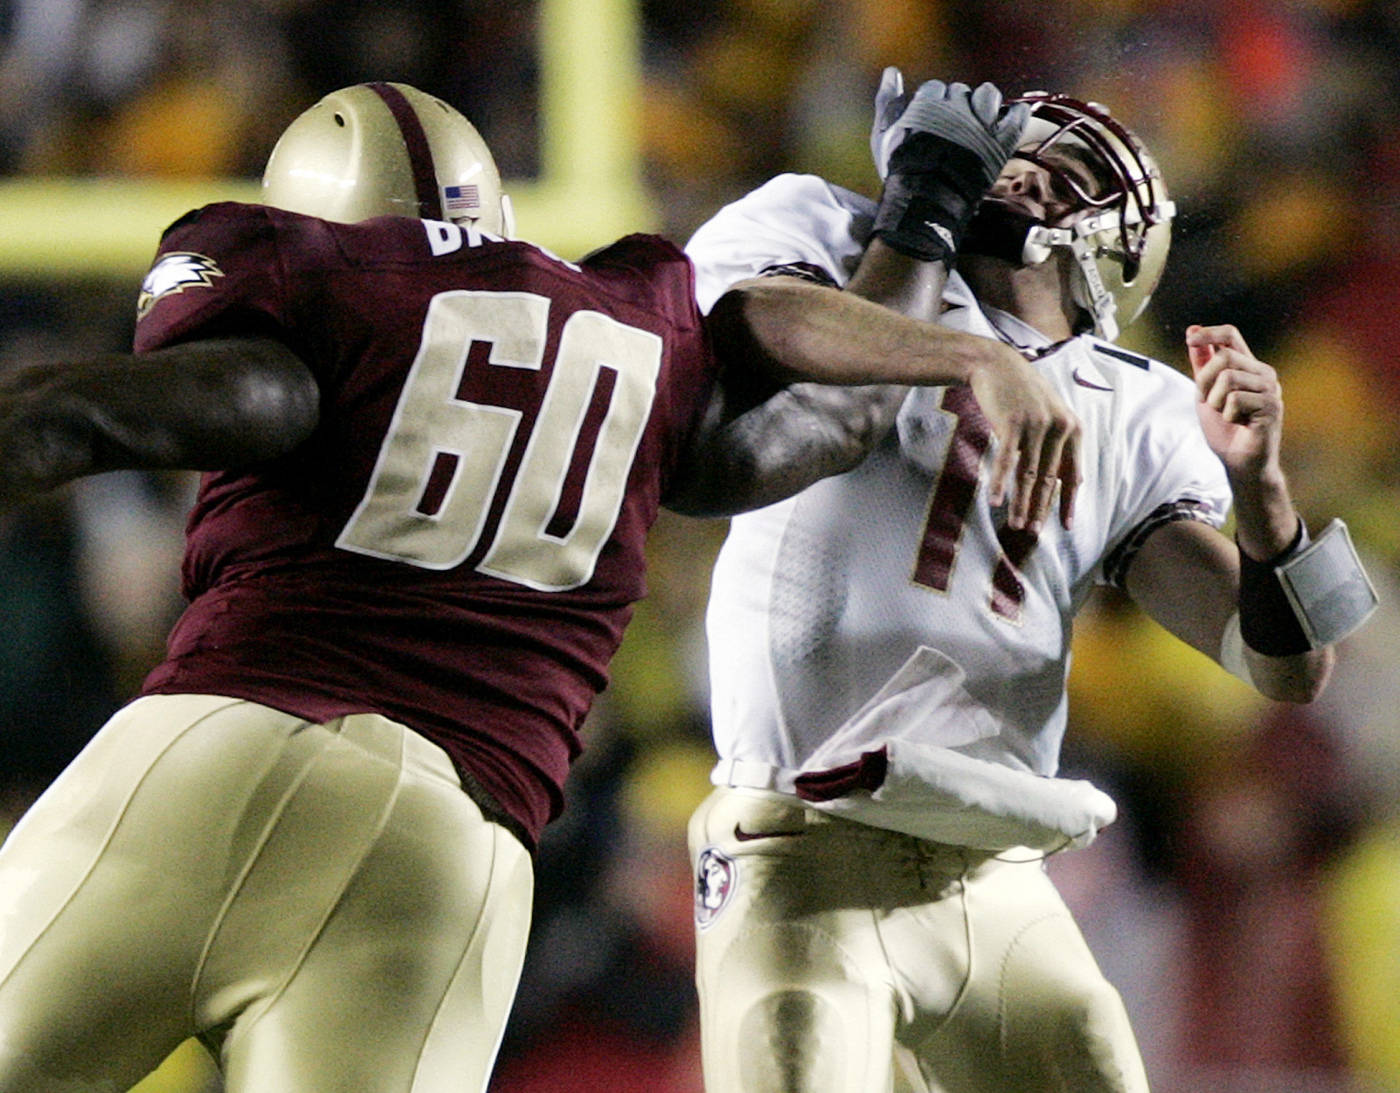 Boston College's Ron Brace (60) hits Florida State quarterback Drew Weatherford after he let go of a pass during the first half of a football game in Boston on Saturday, Nov. 3, 2007. (AP Photo/Michael Dwyer)